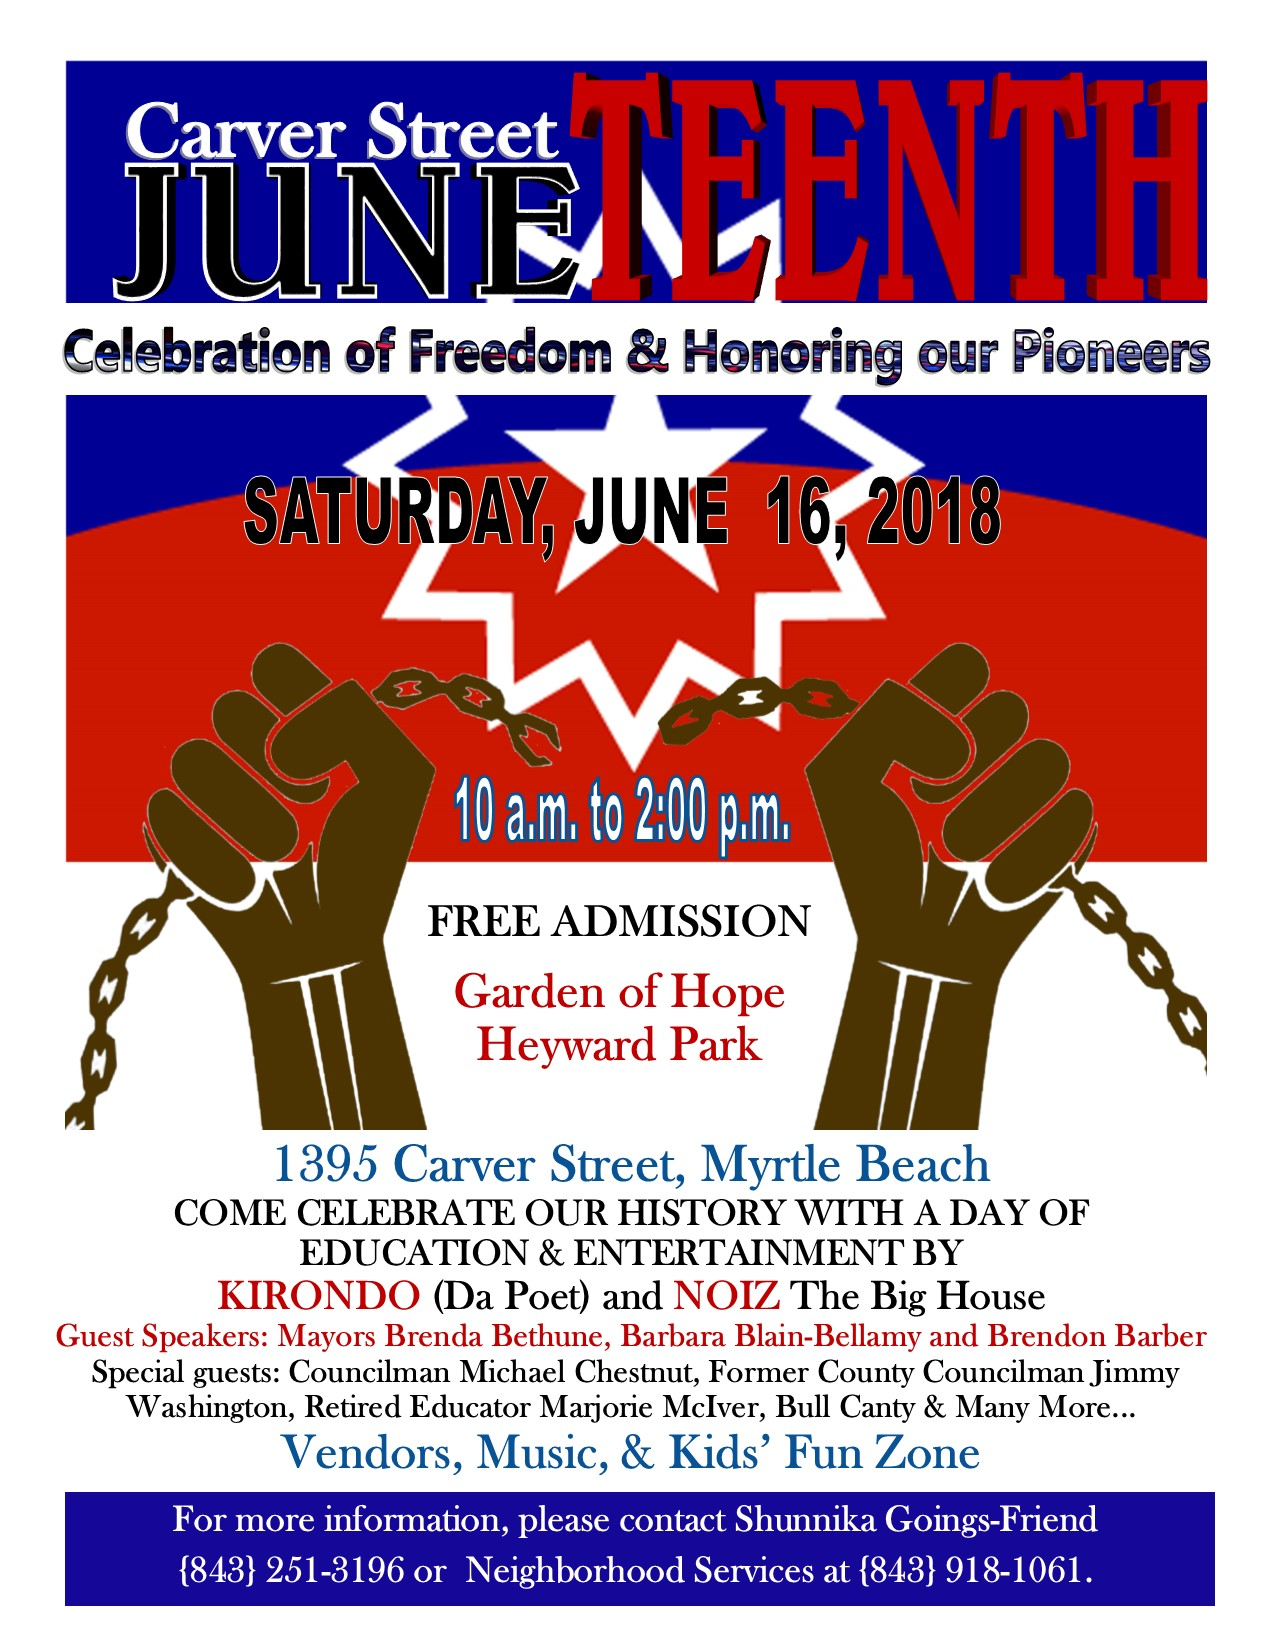 Juneteenth 2018 Update